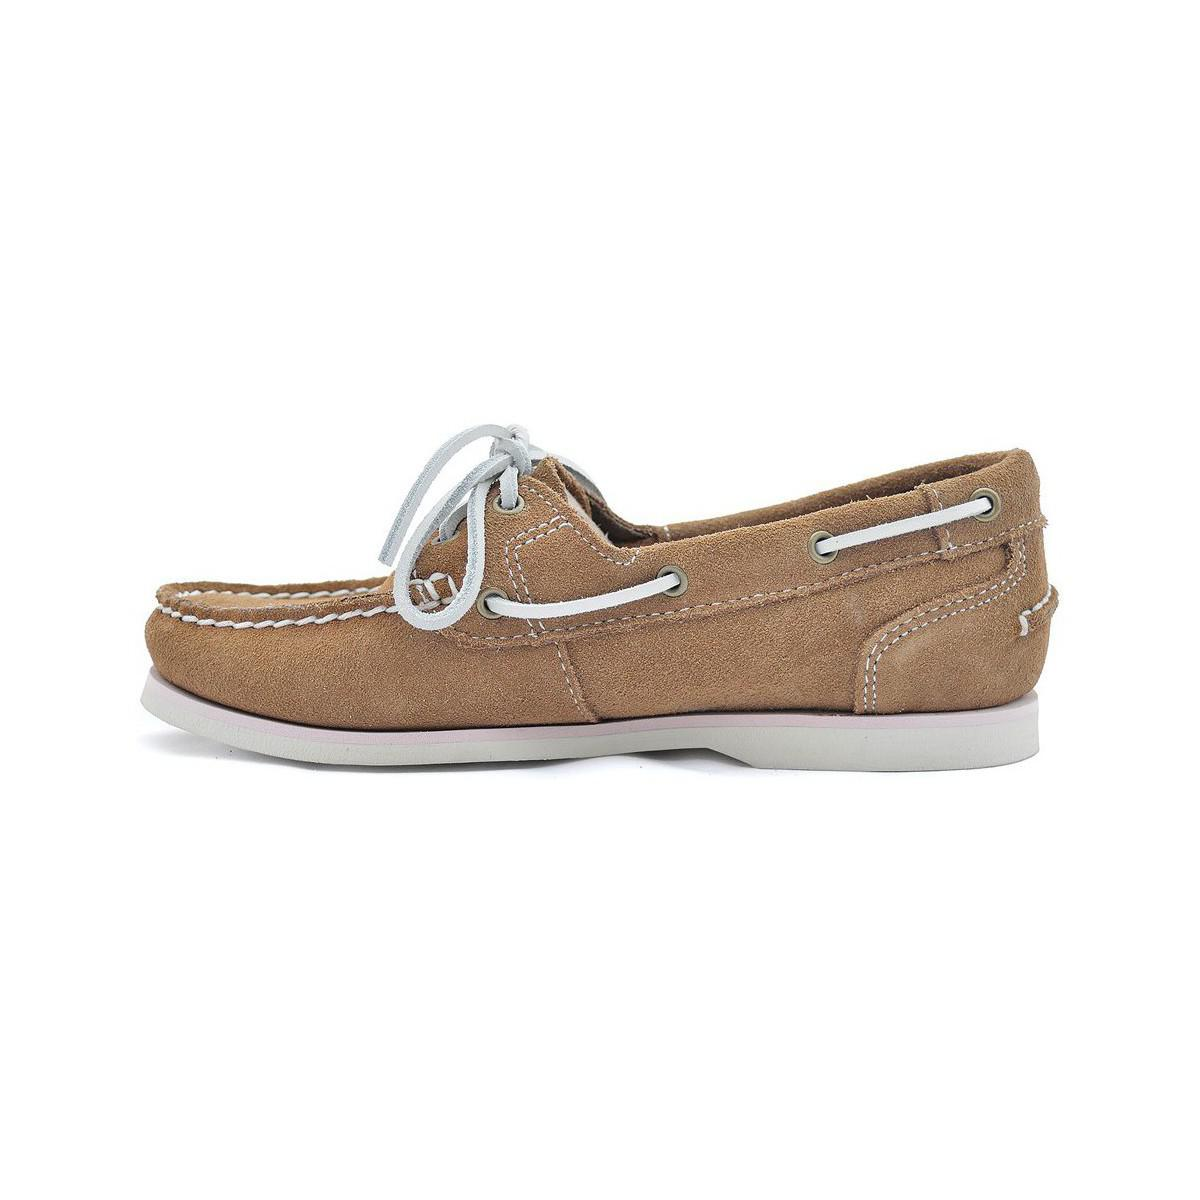 b9854d17879 Timberland Classic Boat Women s Loafers   Casual Shoes In Beige in ...